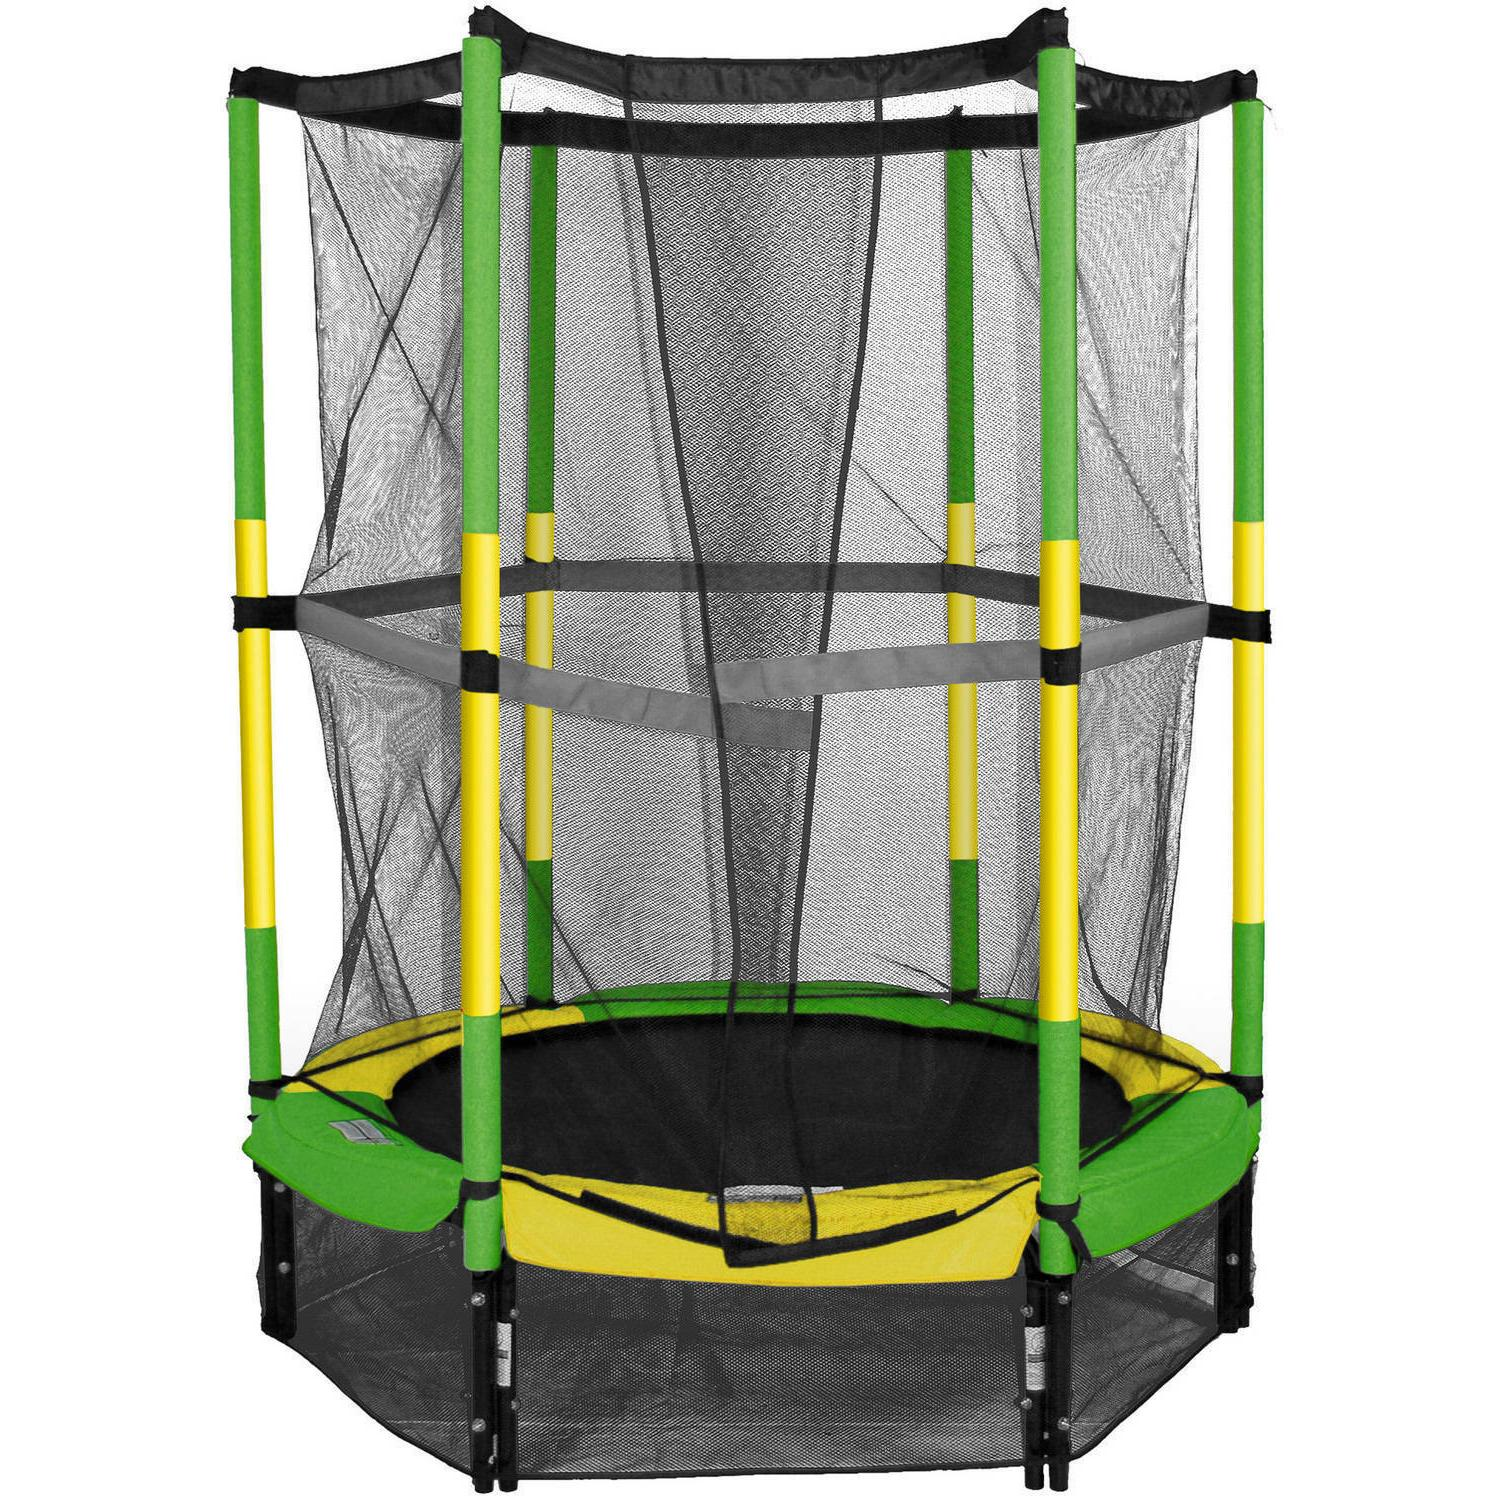 Bounce First Trampoline, with Safety Enclosure, Green